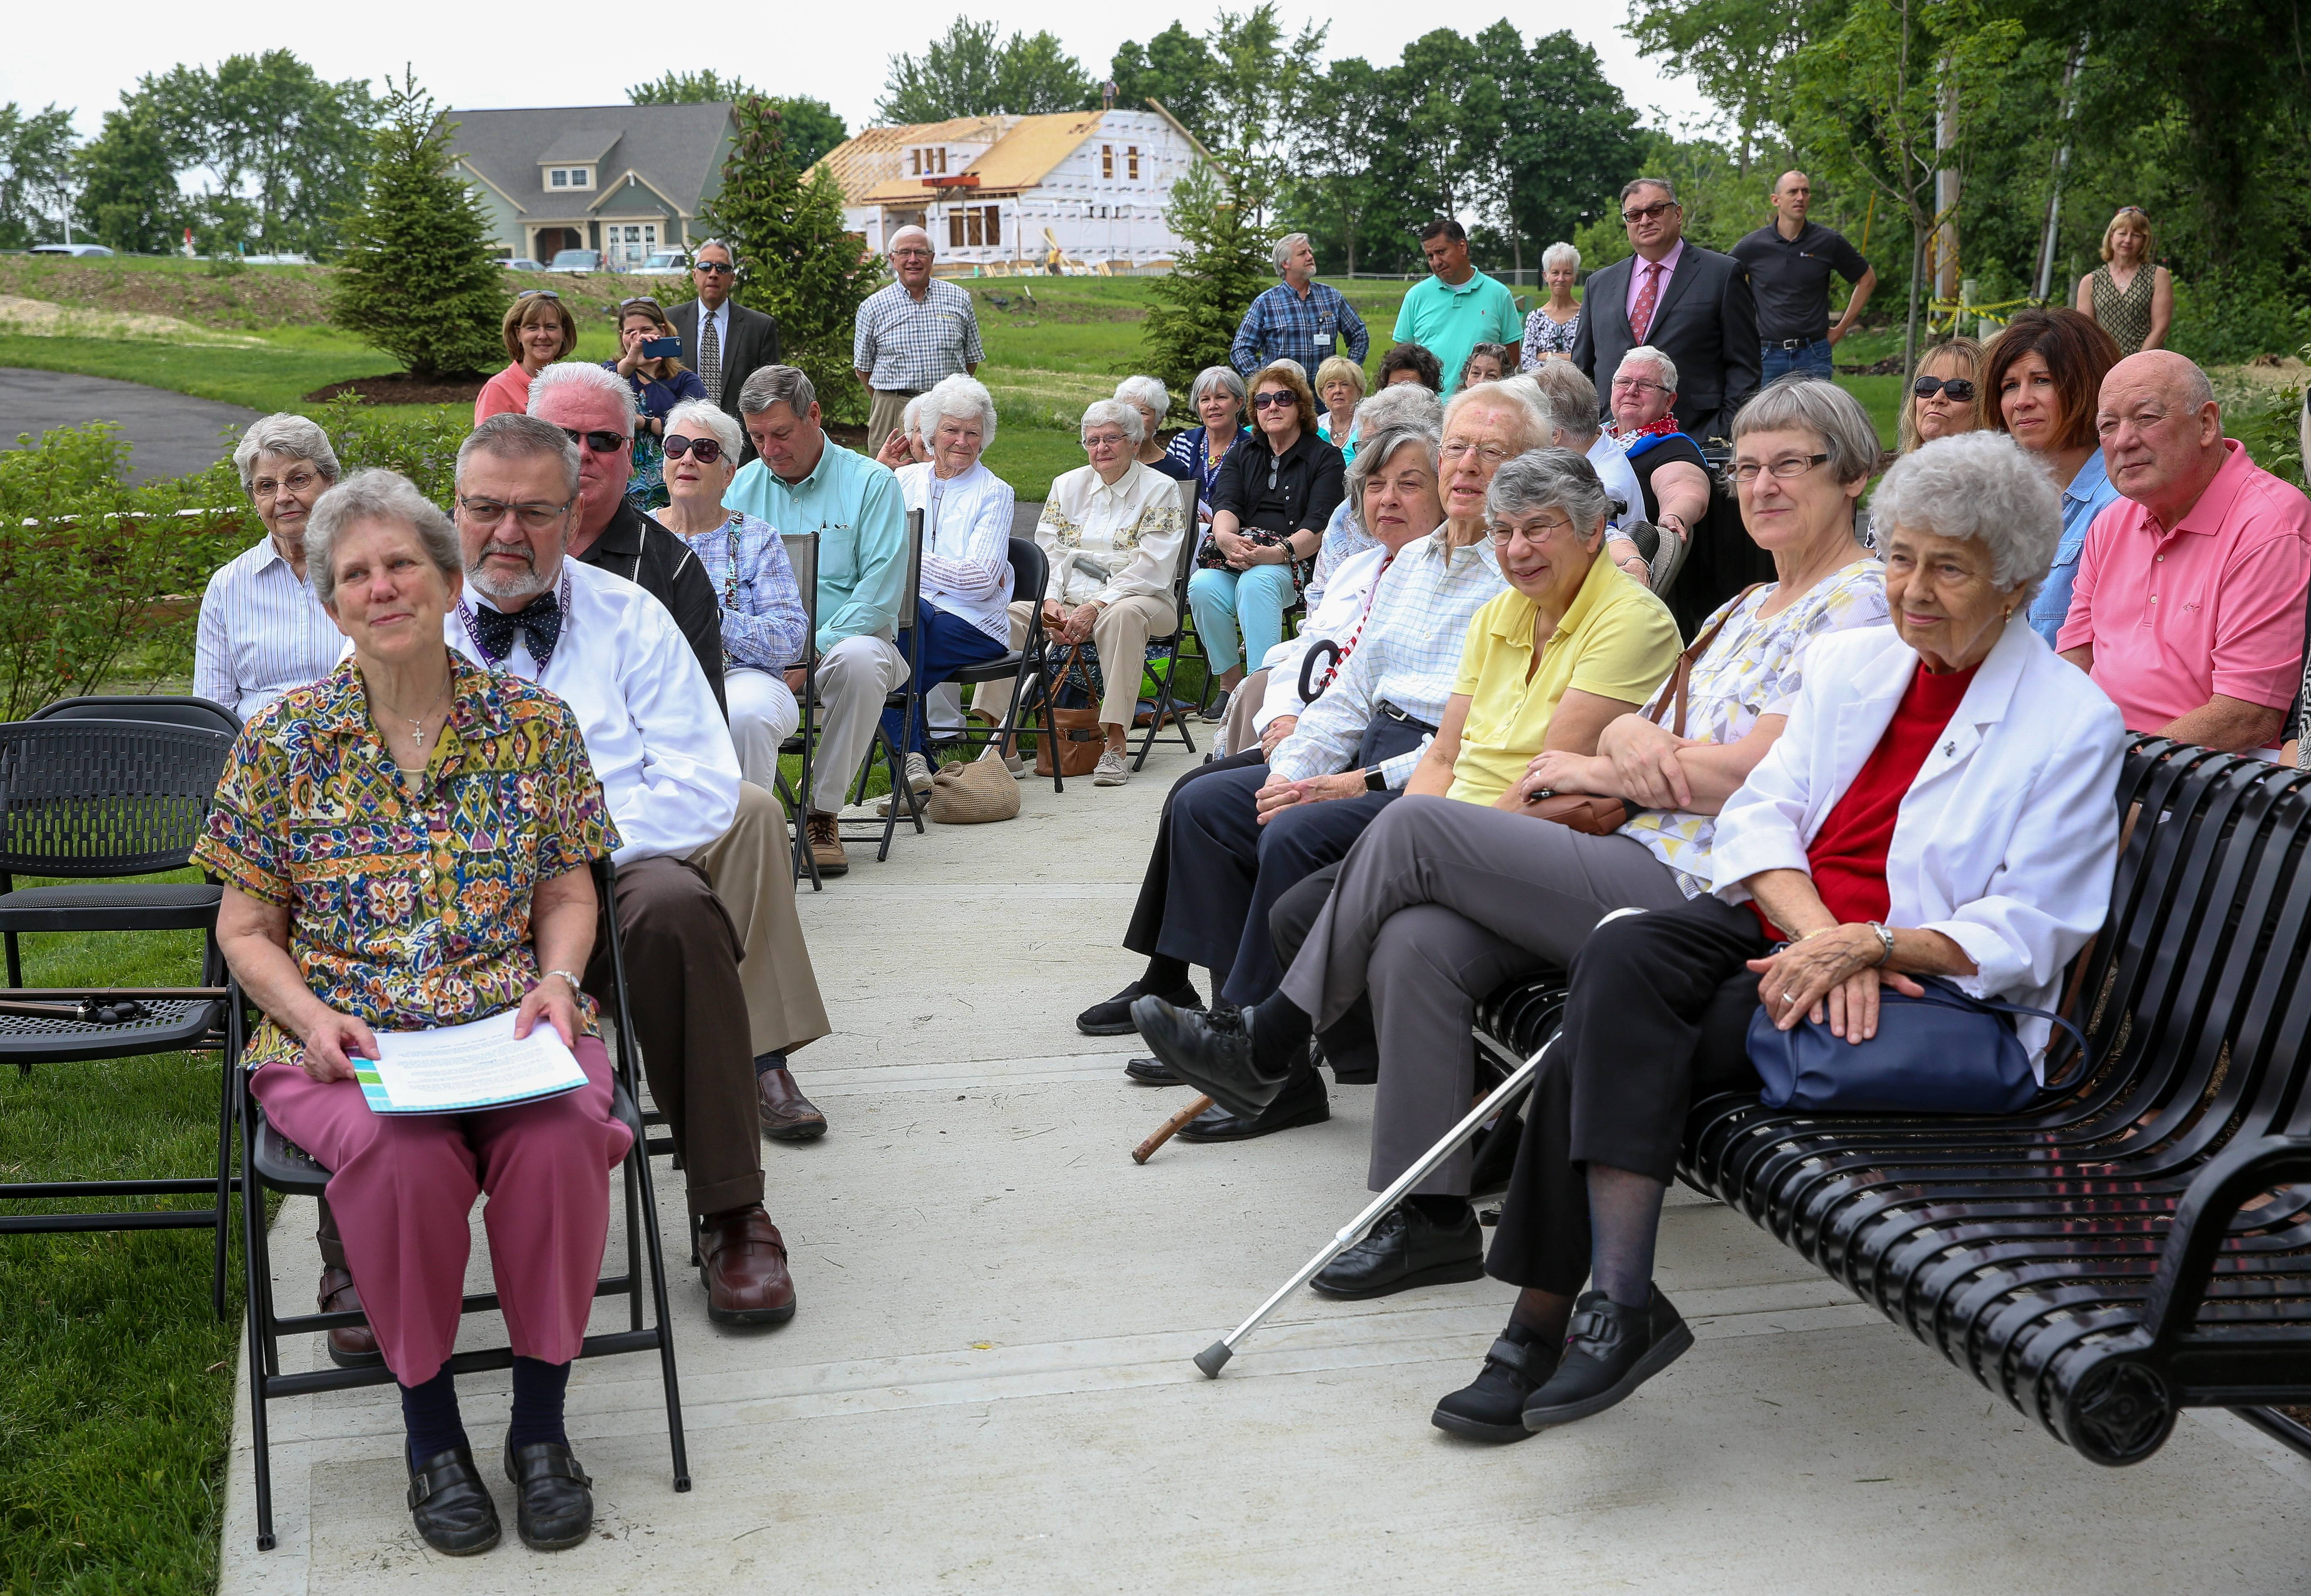 The plaque dedication drew a gathering of Loretto nuns, Pulte developers, Wheaton Mayor Michael Gresk and other supporters of the religious community.